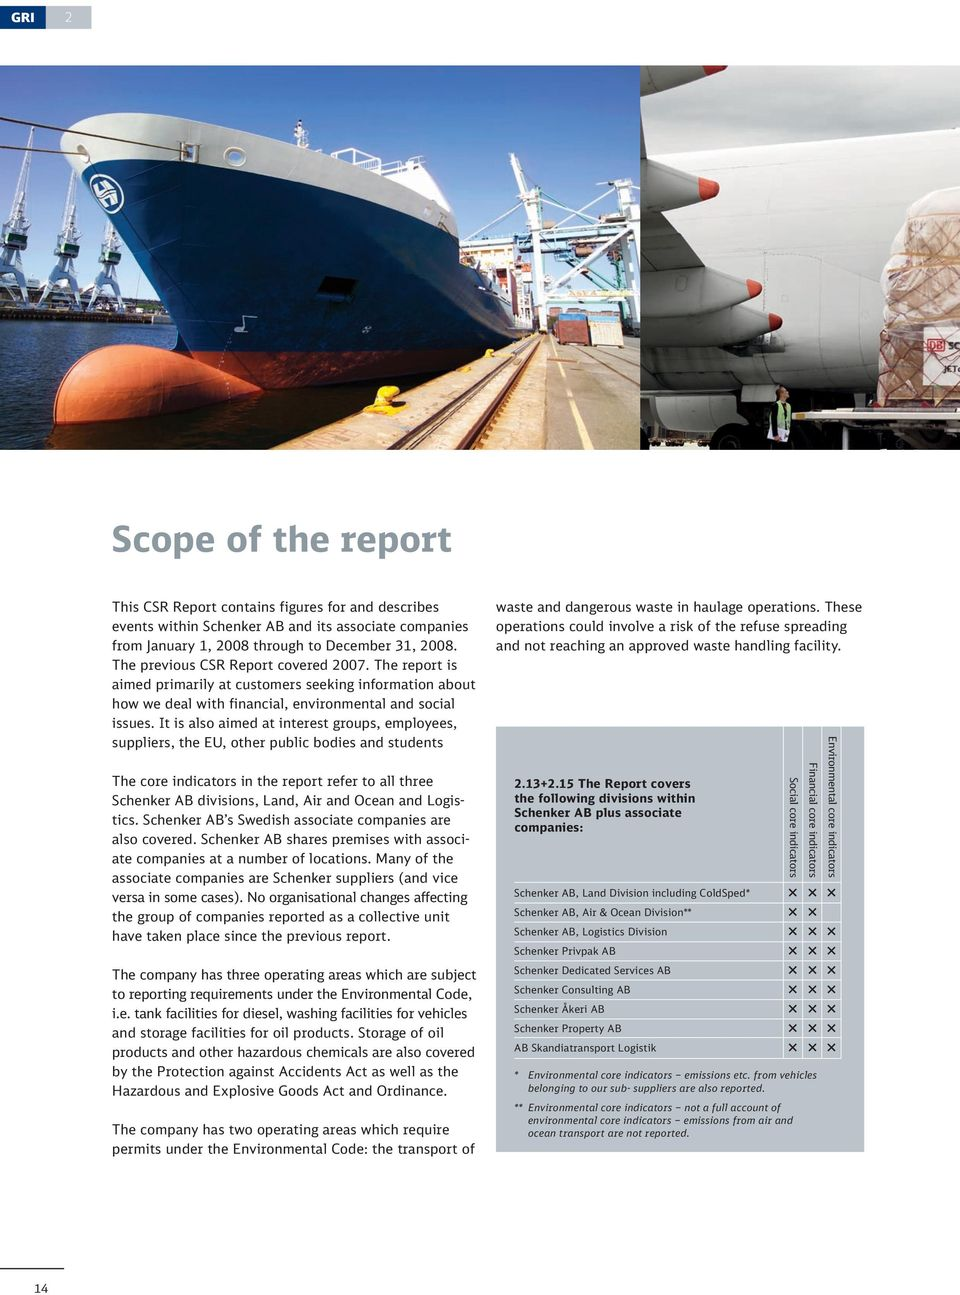 It is also aimed at interest groups, employees, suppliers, the EU, other public bodies and students The core indicators in the report refer to all three Schenker AB divisions, Land, Air and Ocean and